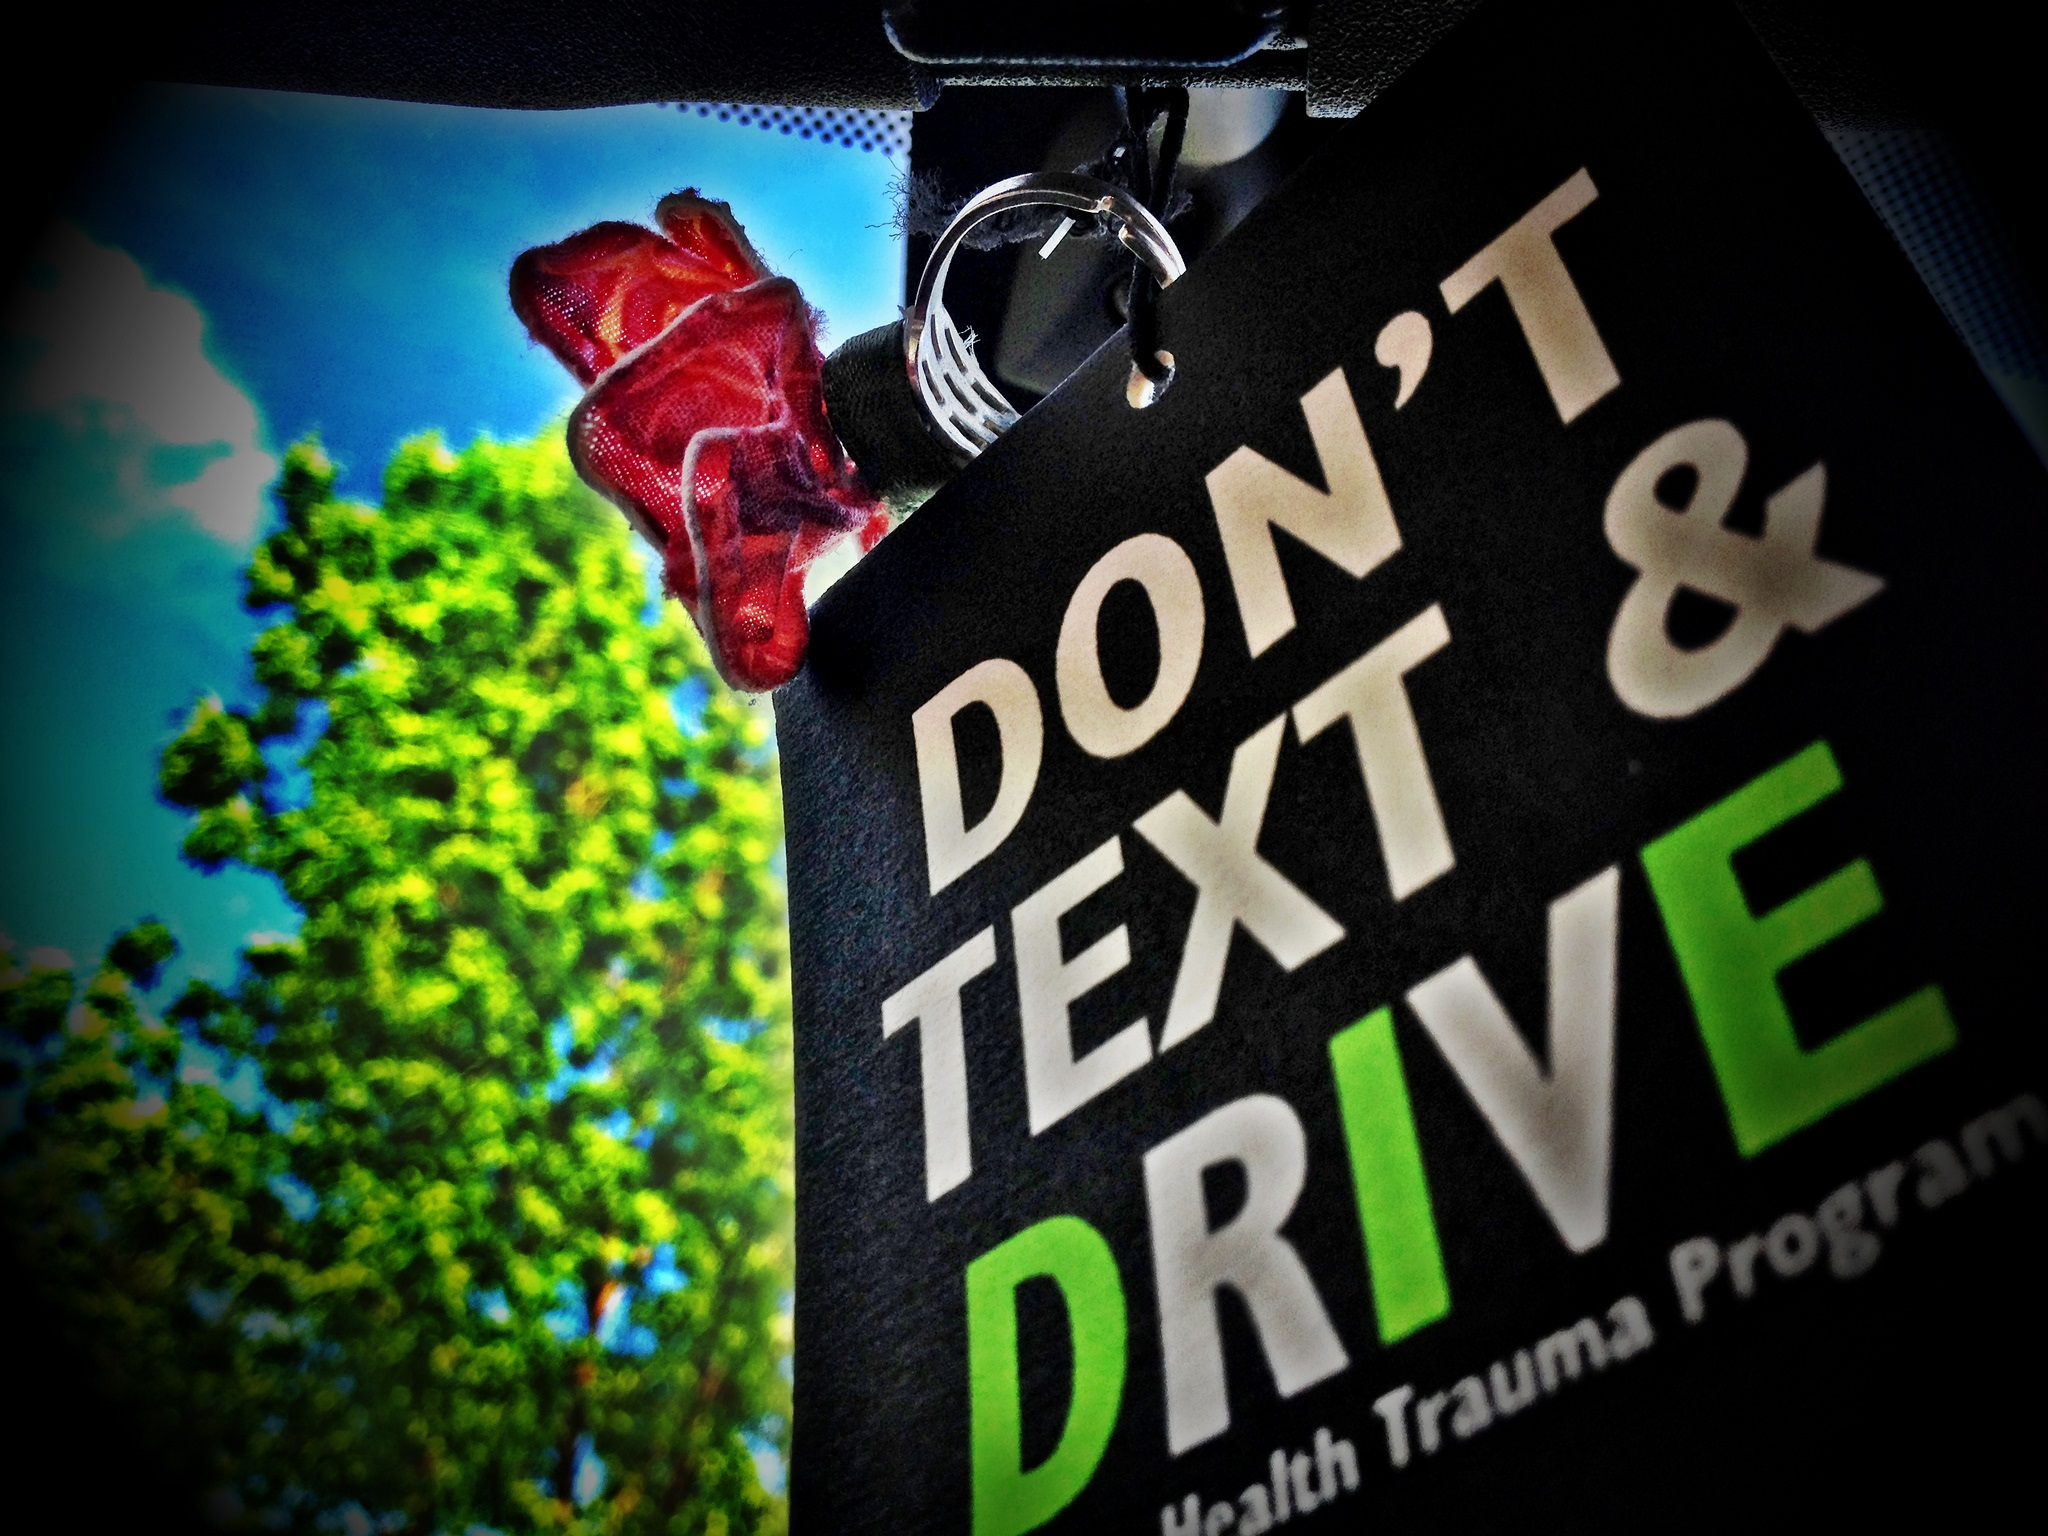 text and drive sign